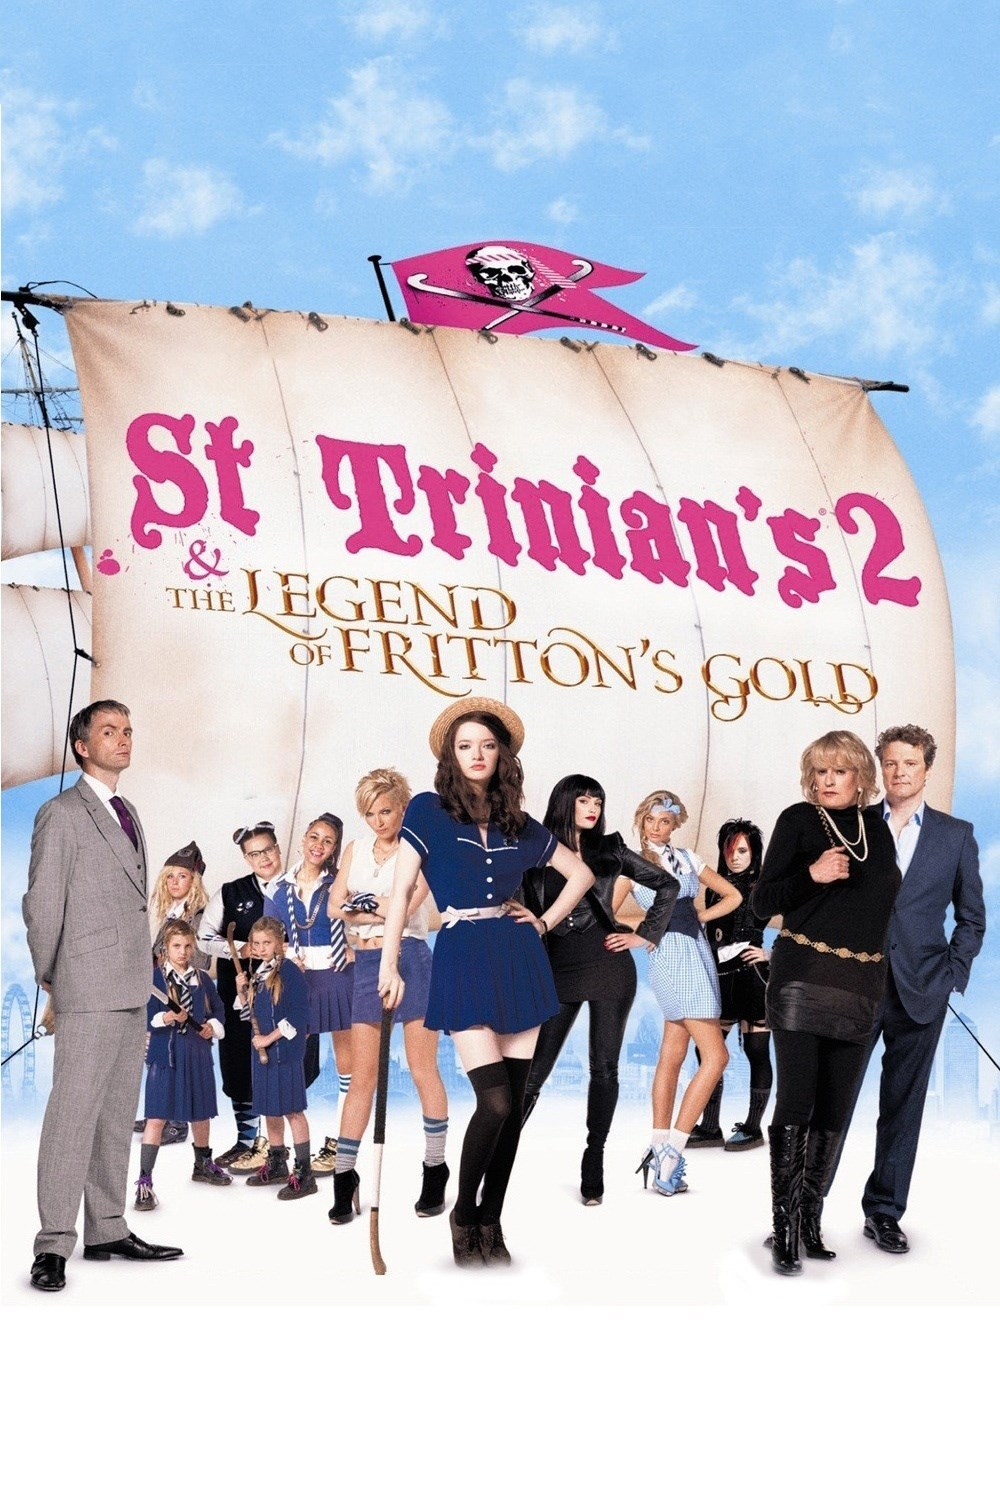 St Trinian s 2 The Legend of Fritton s Gold - IMDb